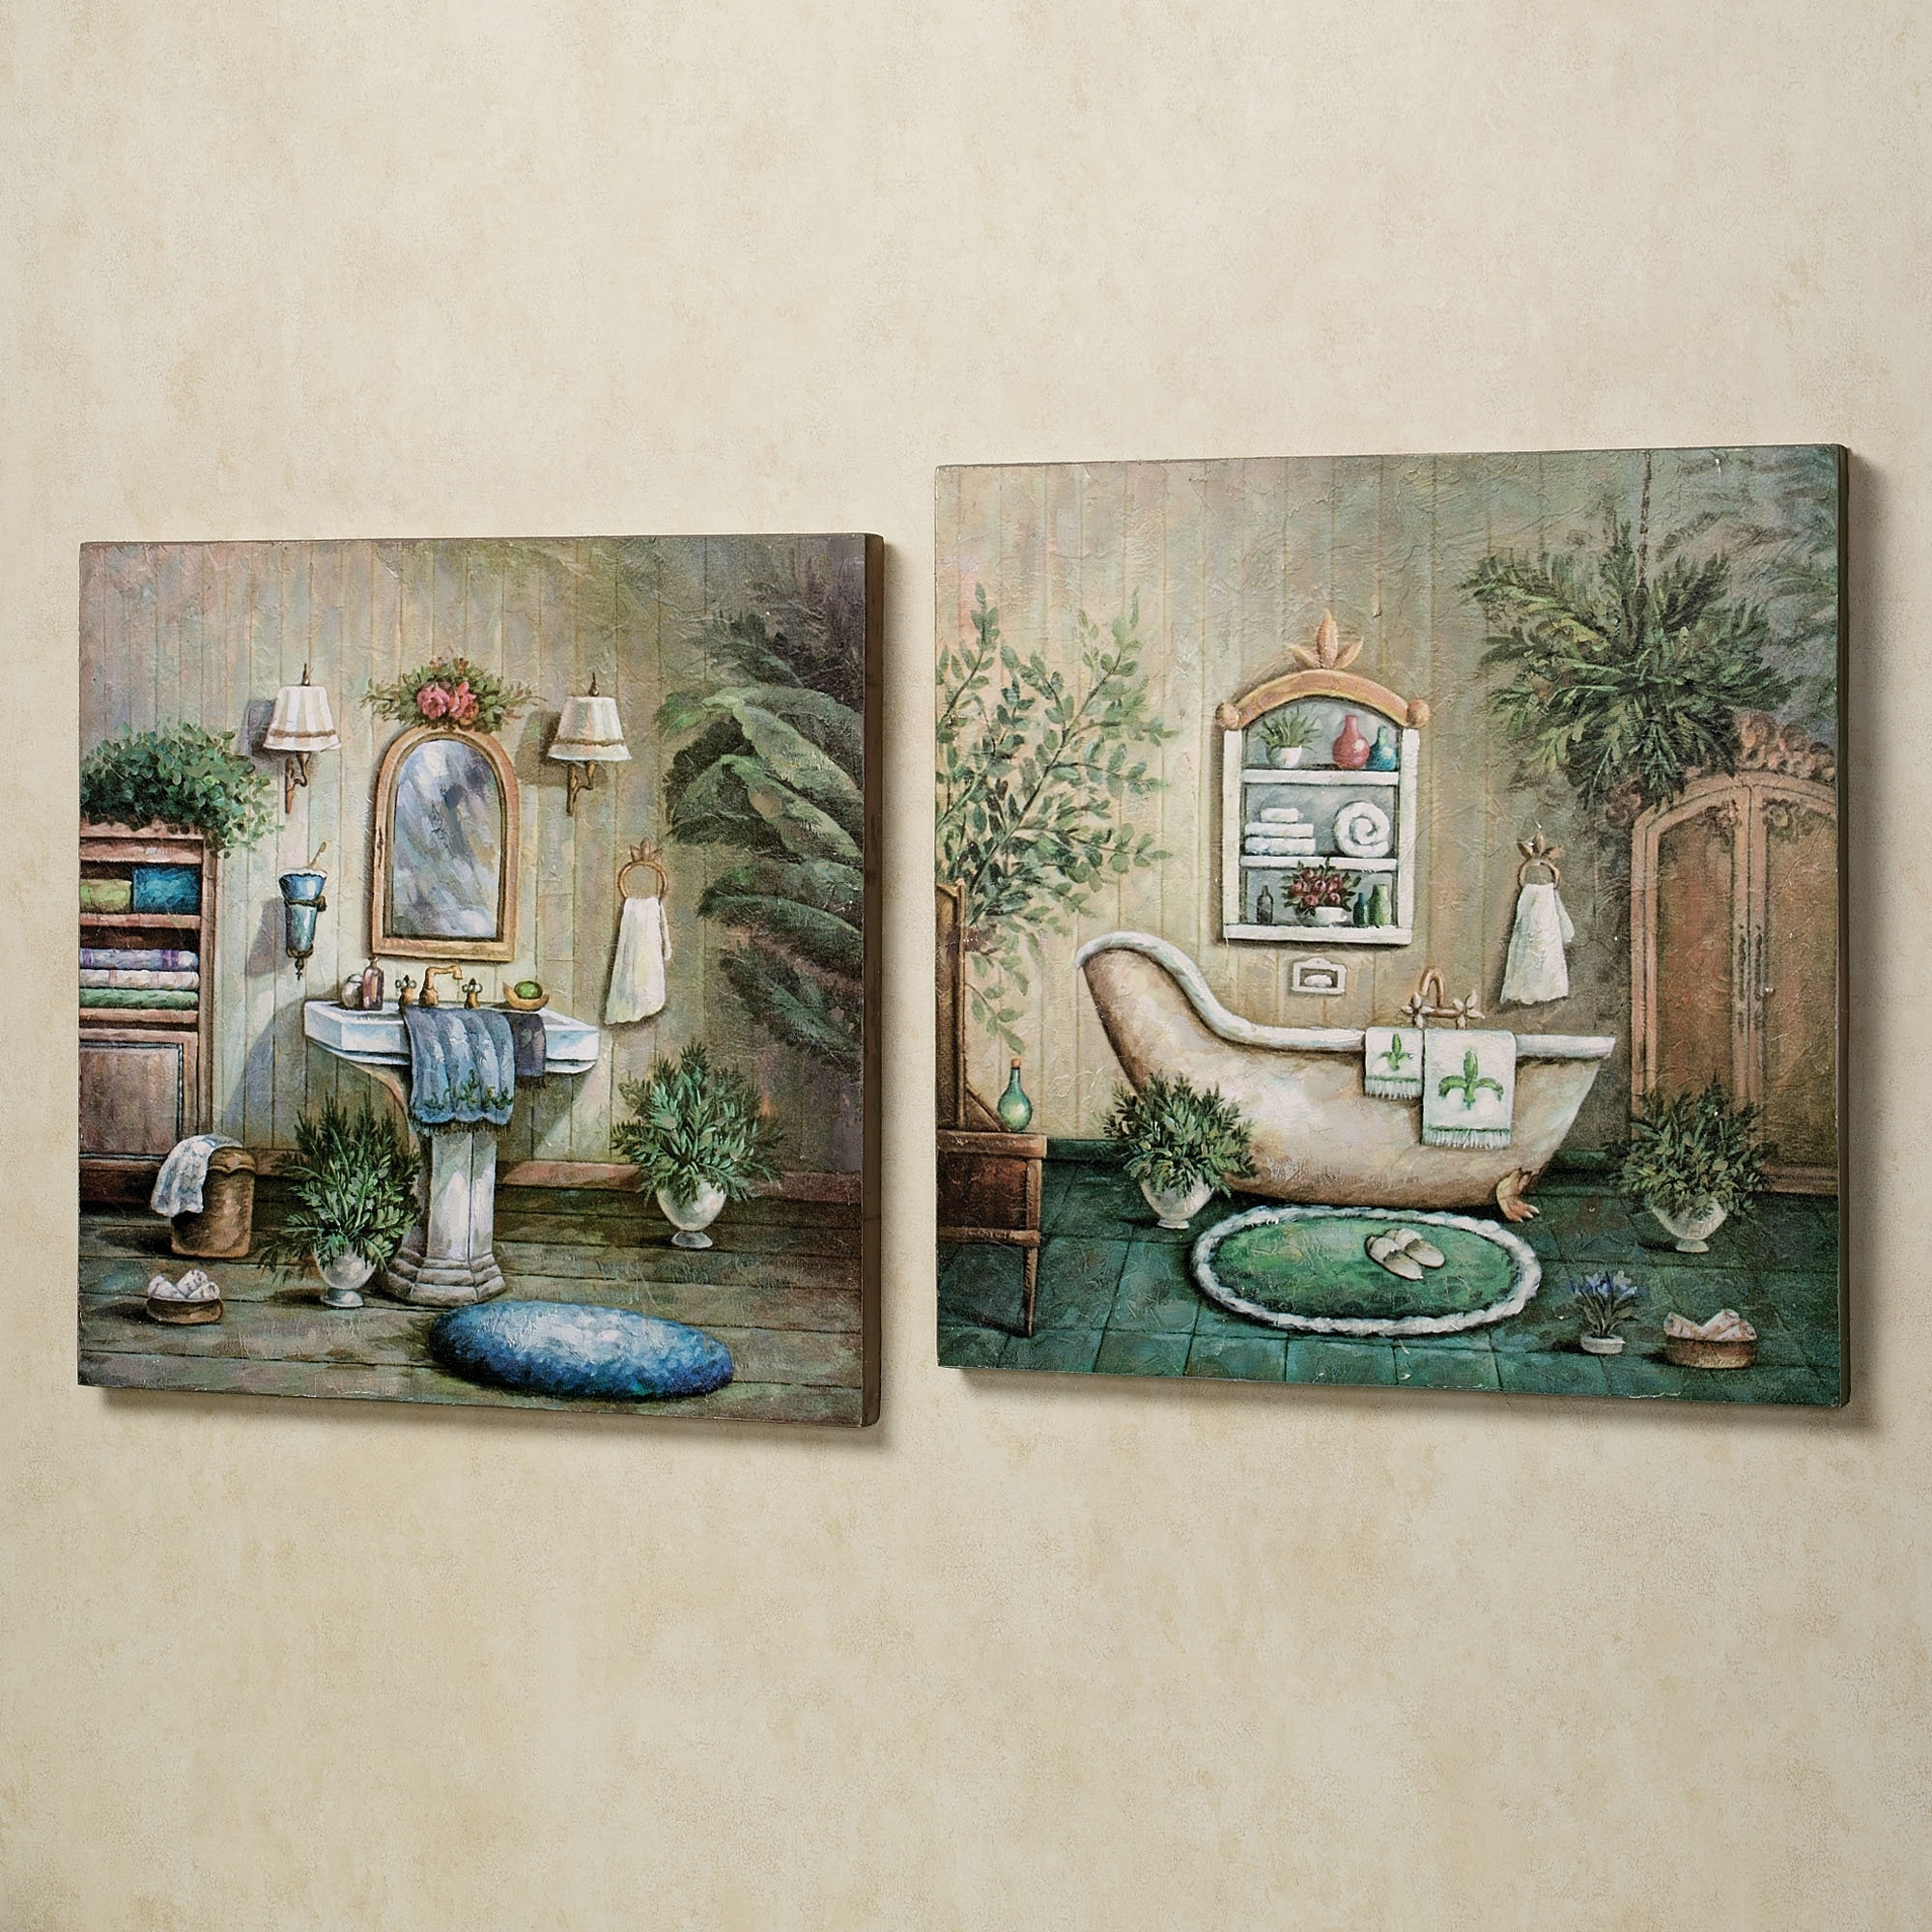 Bathroom : Contemporary Bathroom Decorating Ideas With Artistic Wall For Widely Used Bathroom Wall Art Decors (View 11 of 15)